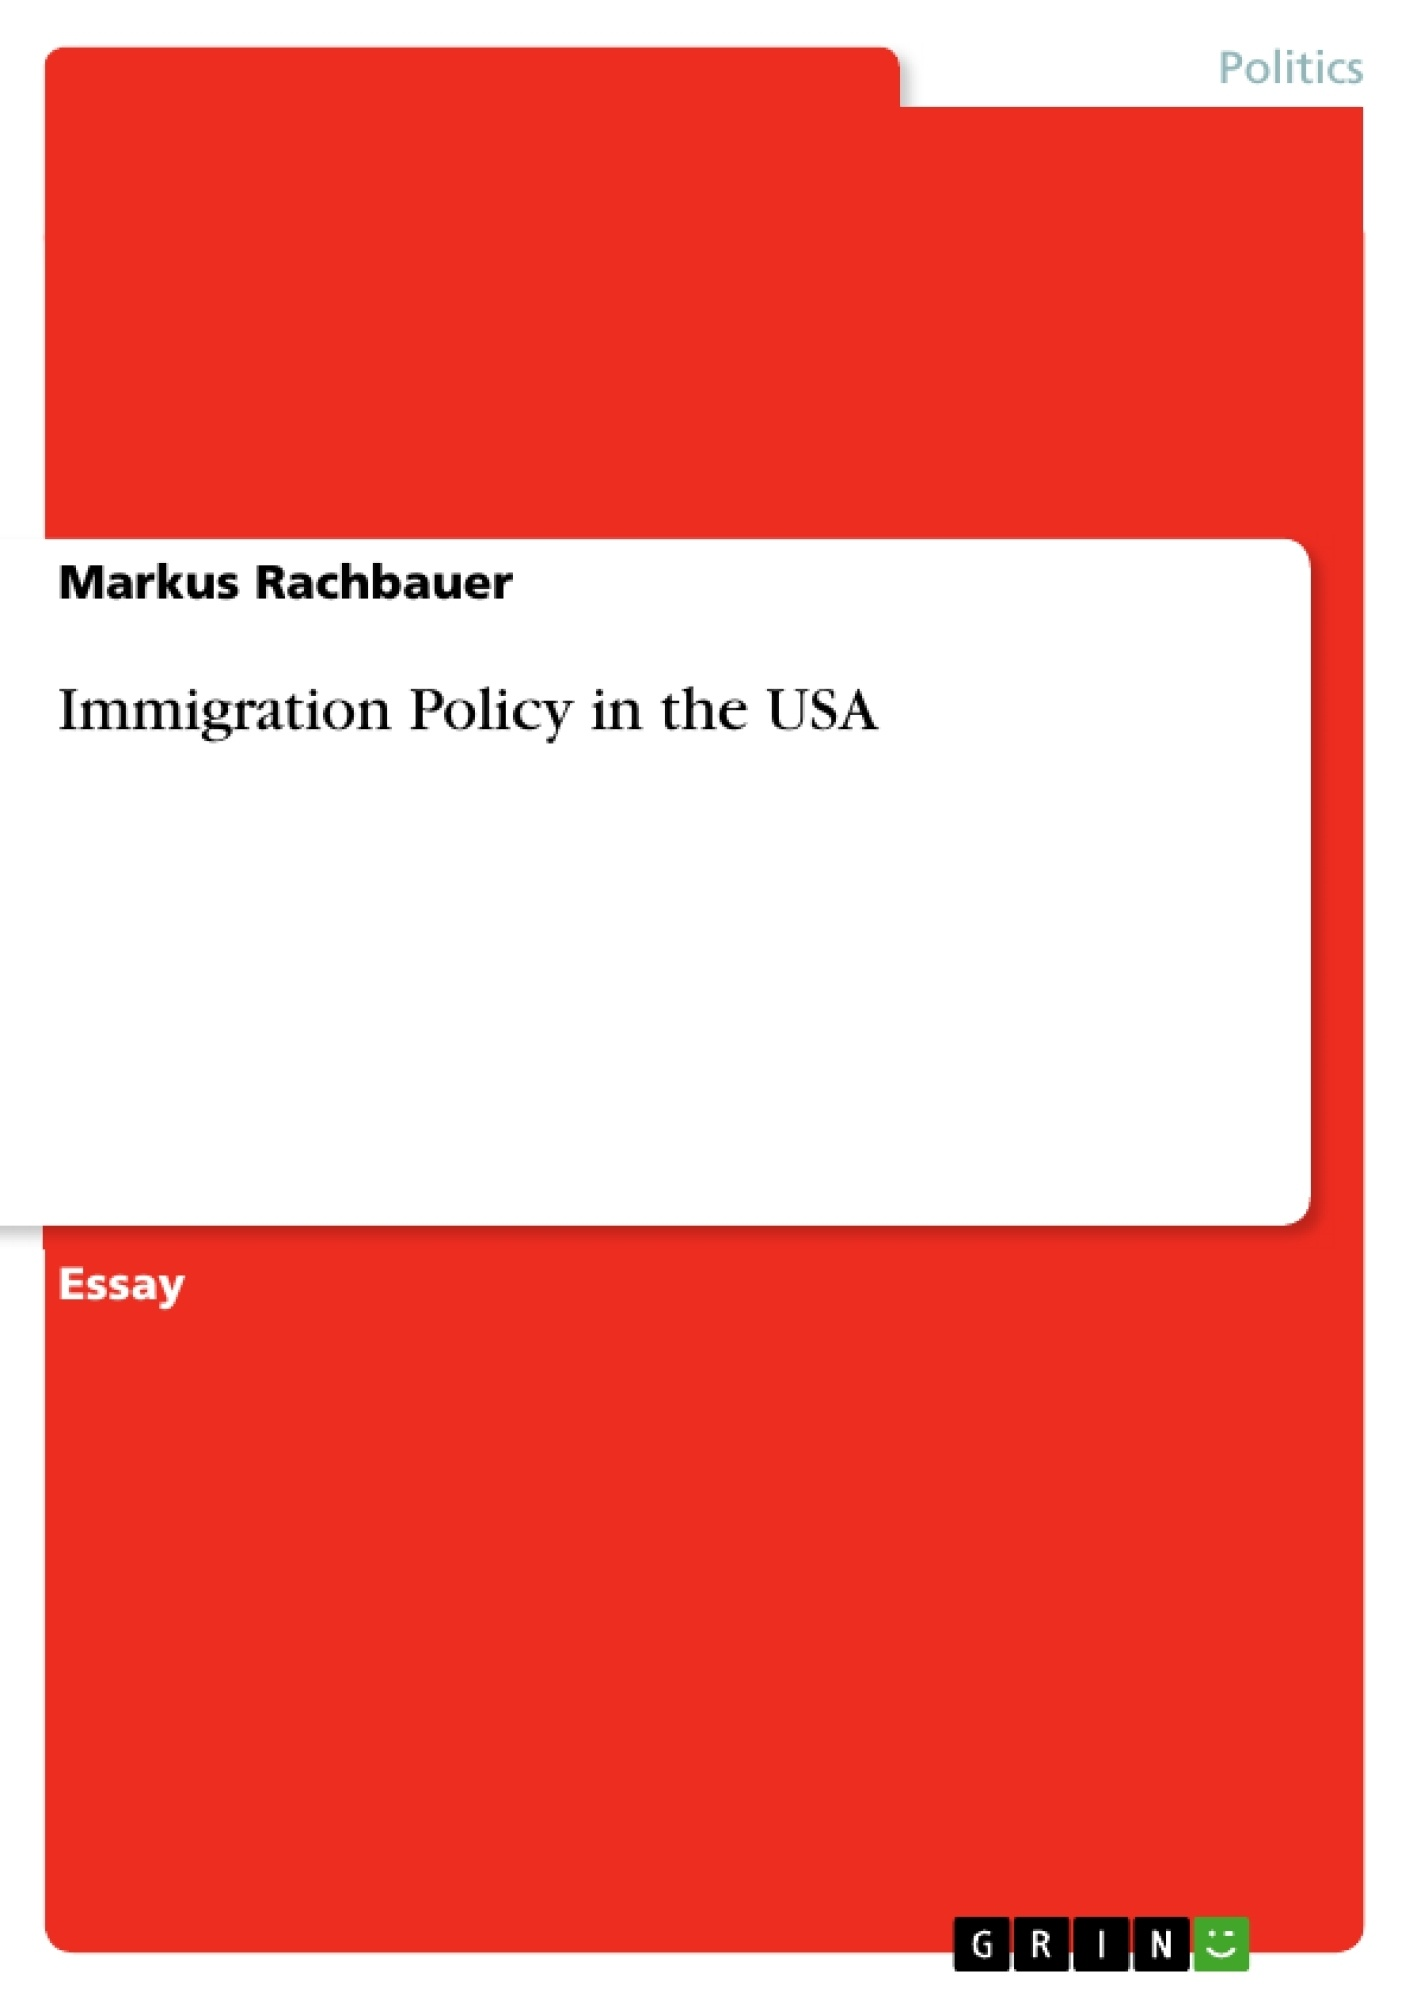 Title: Immigration Policy in the USA